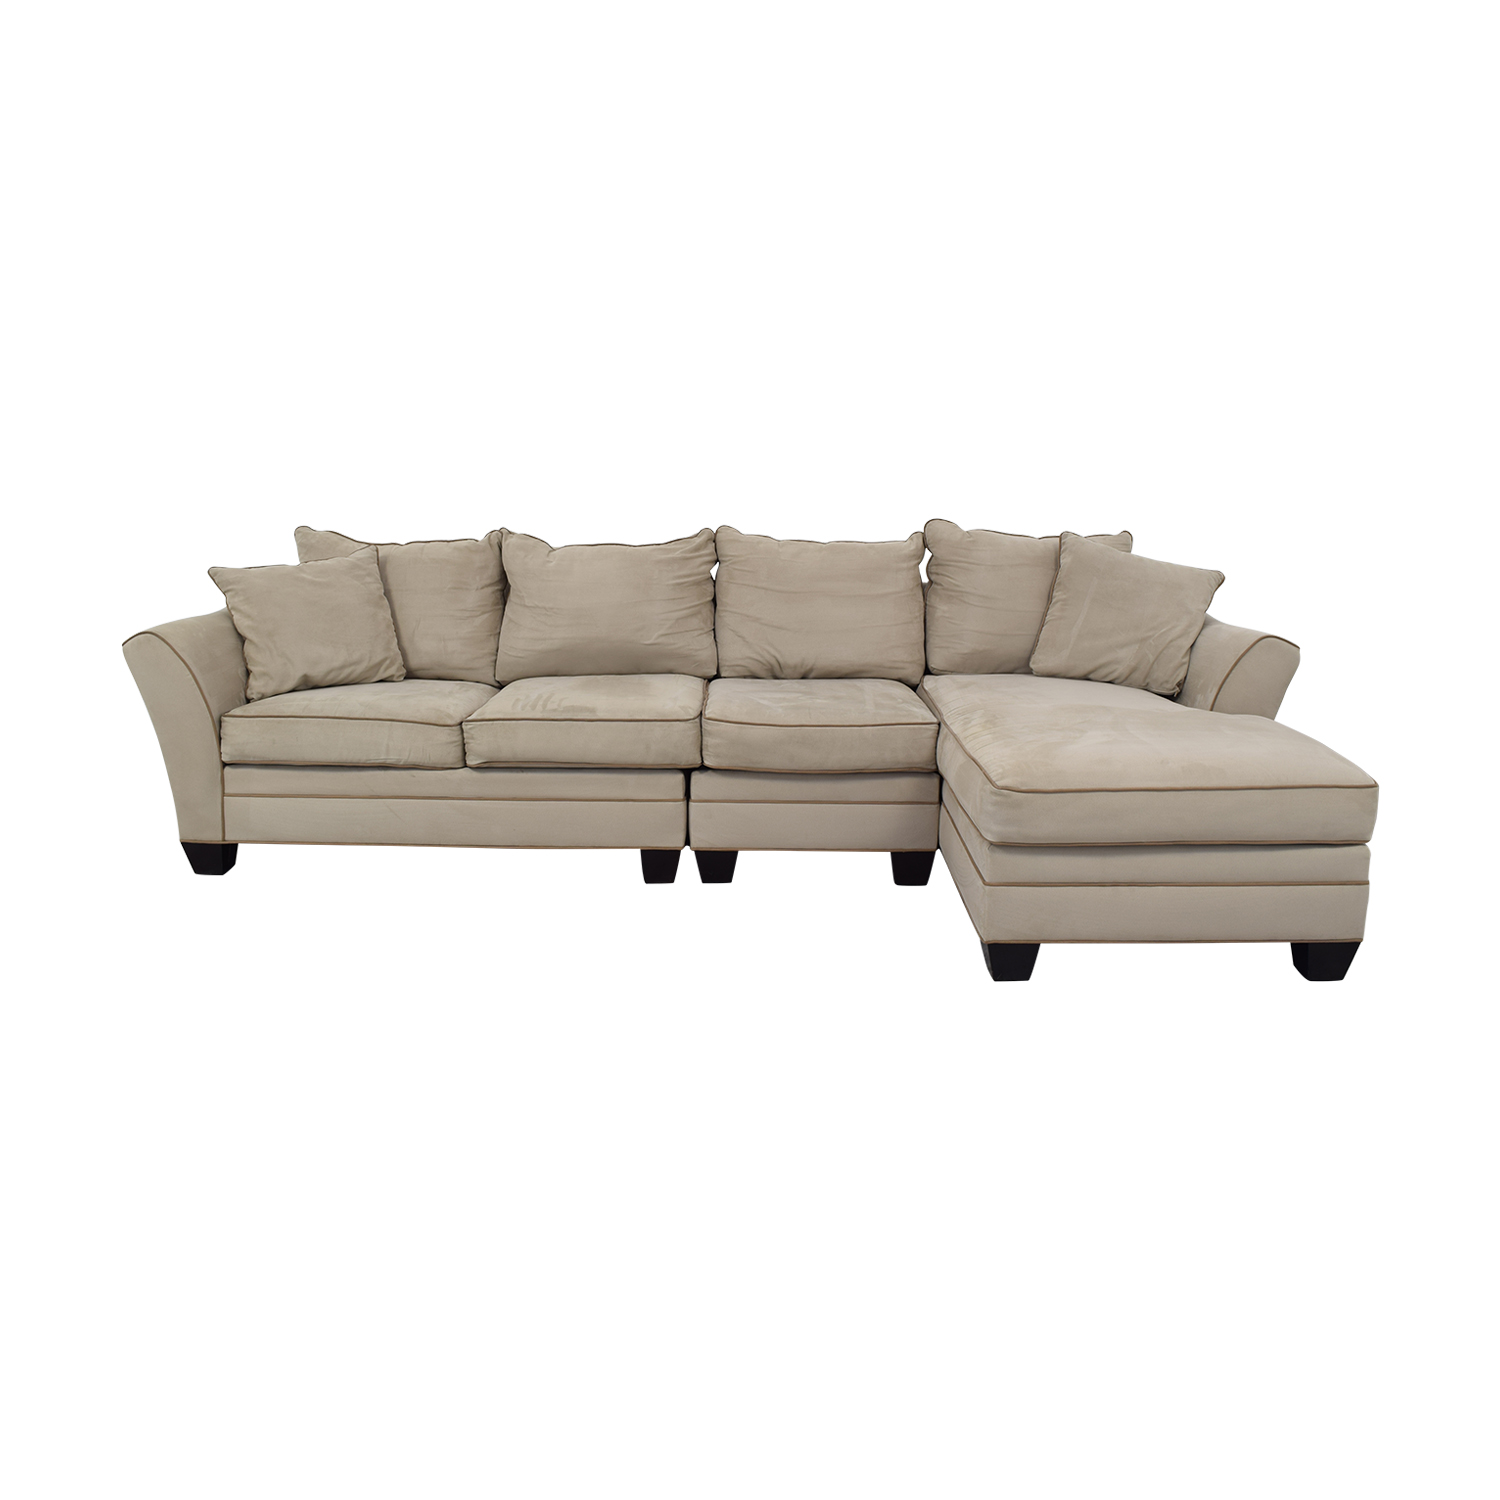 shop Raymour & Flanigan L-Shaped Sectional Sofa Raymour & Flanigan Sofas